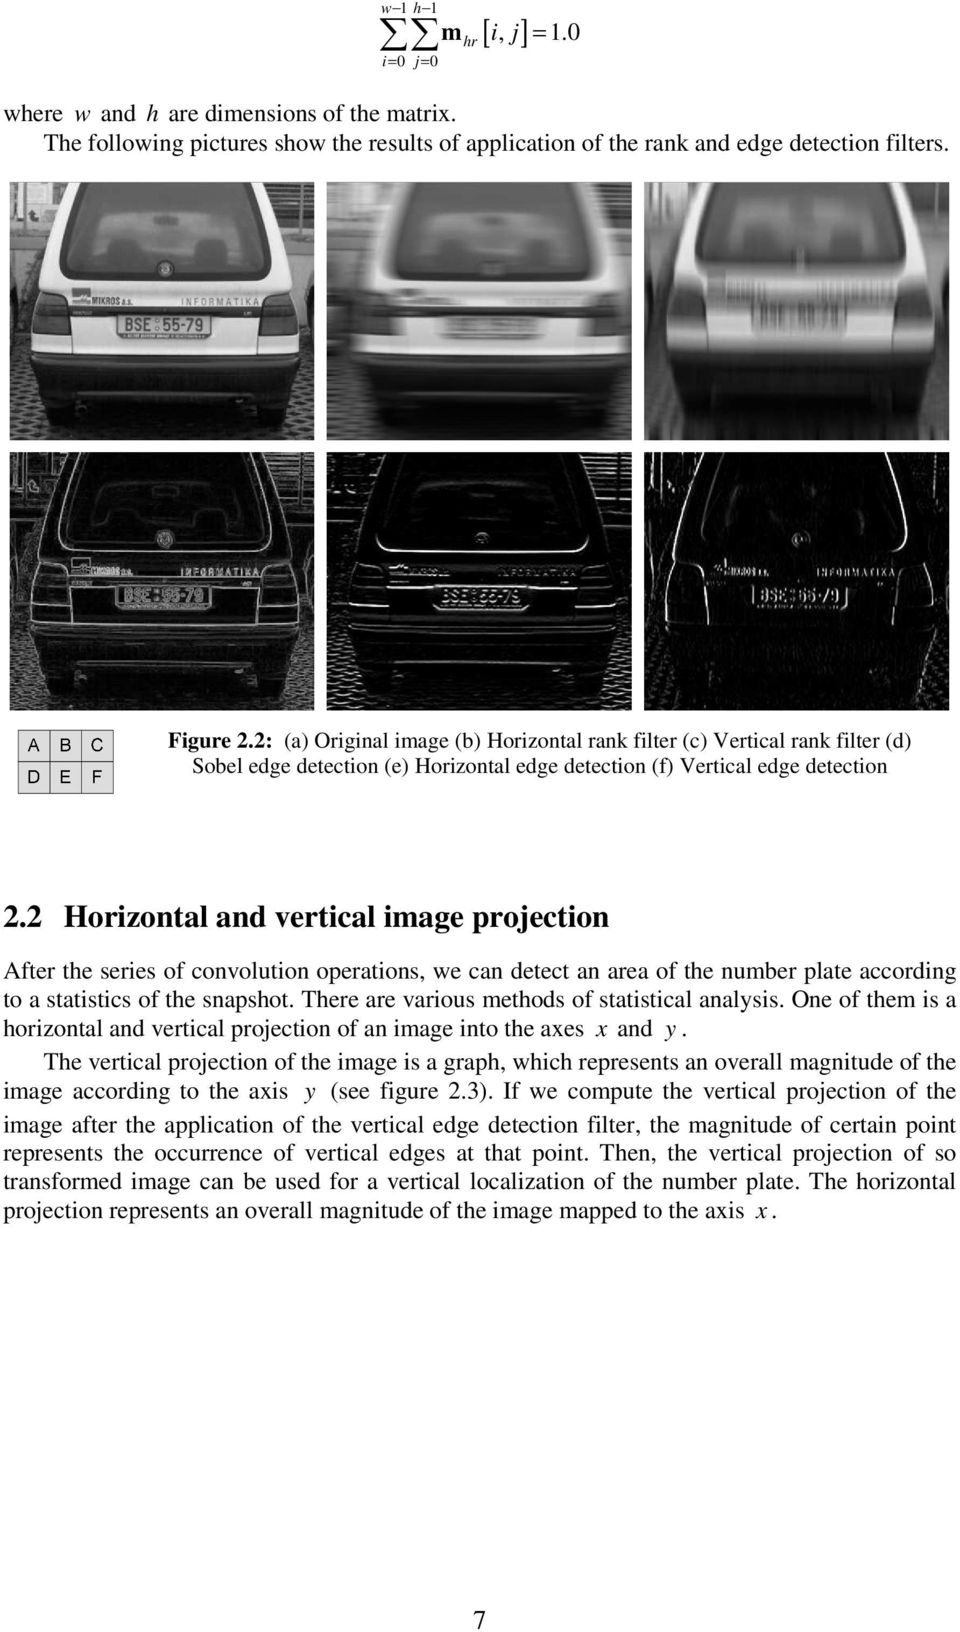 2 Horzontal and vertcal mage projecton After the seres of convoluton operatons, we can detect an area of the number plate accordng to a statstcs of the snapshot.